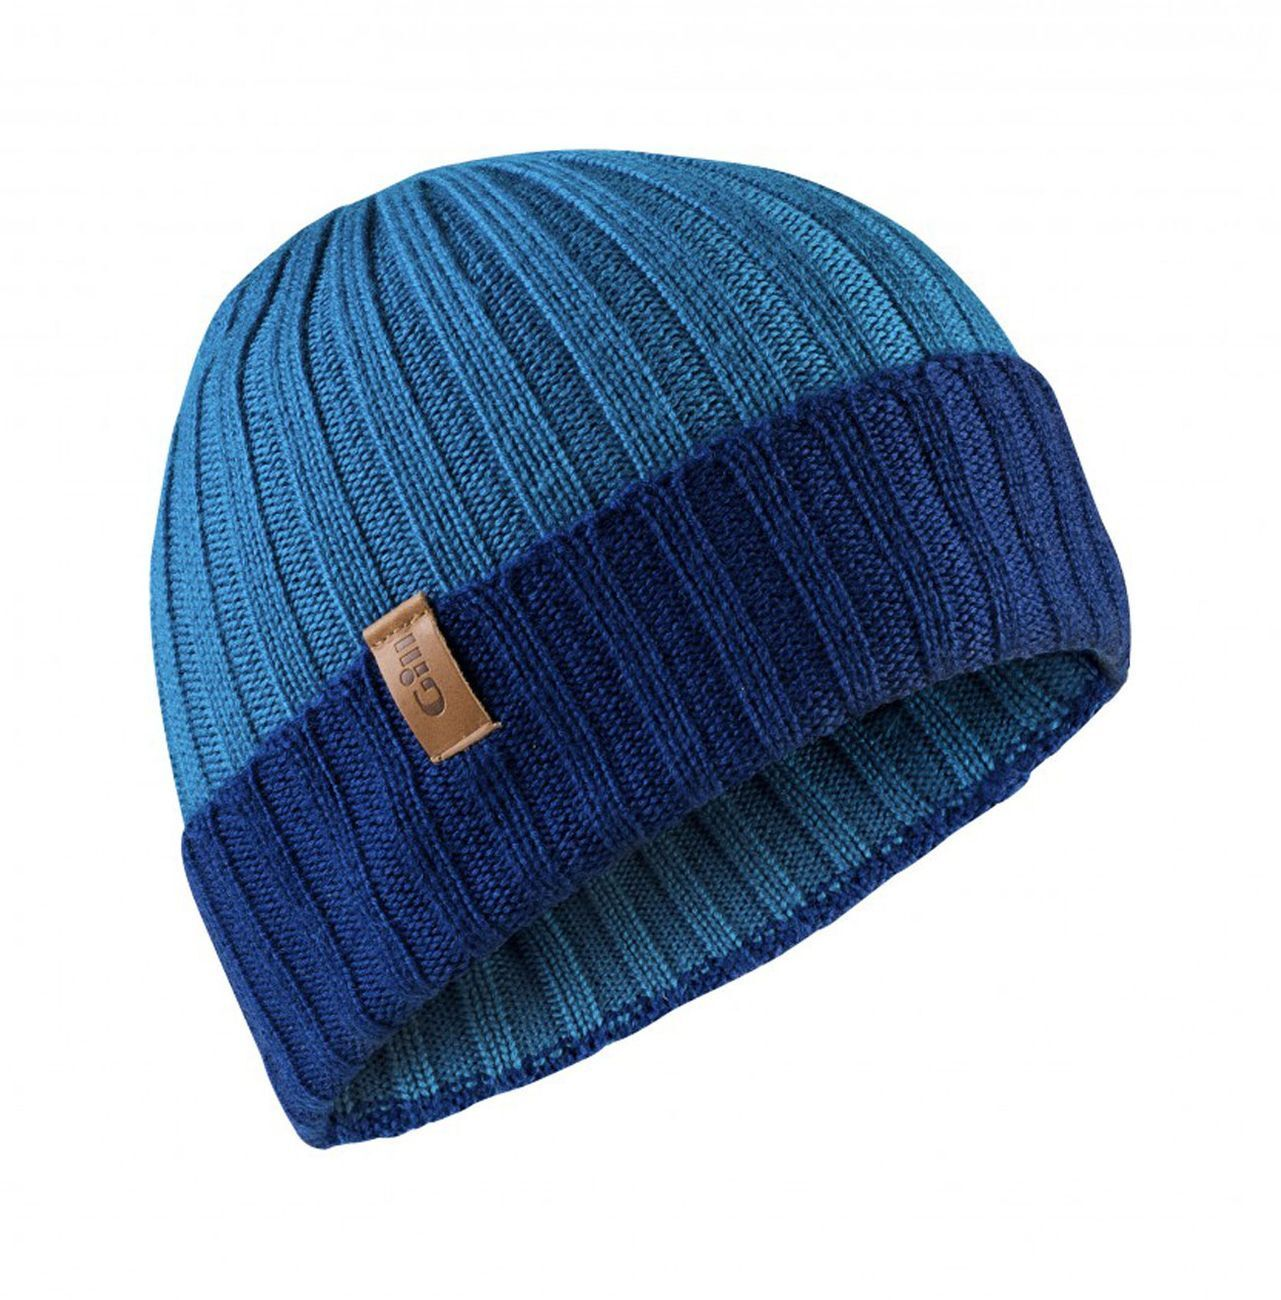 Gill Unisex Knitted Cap Also for the Between-Seasons Fence Net Hat